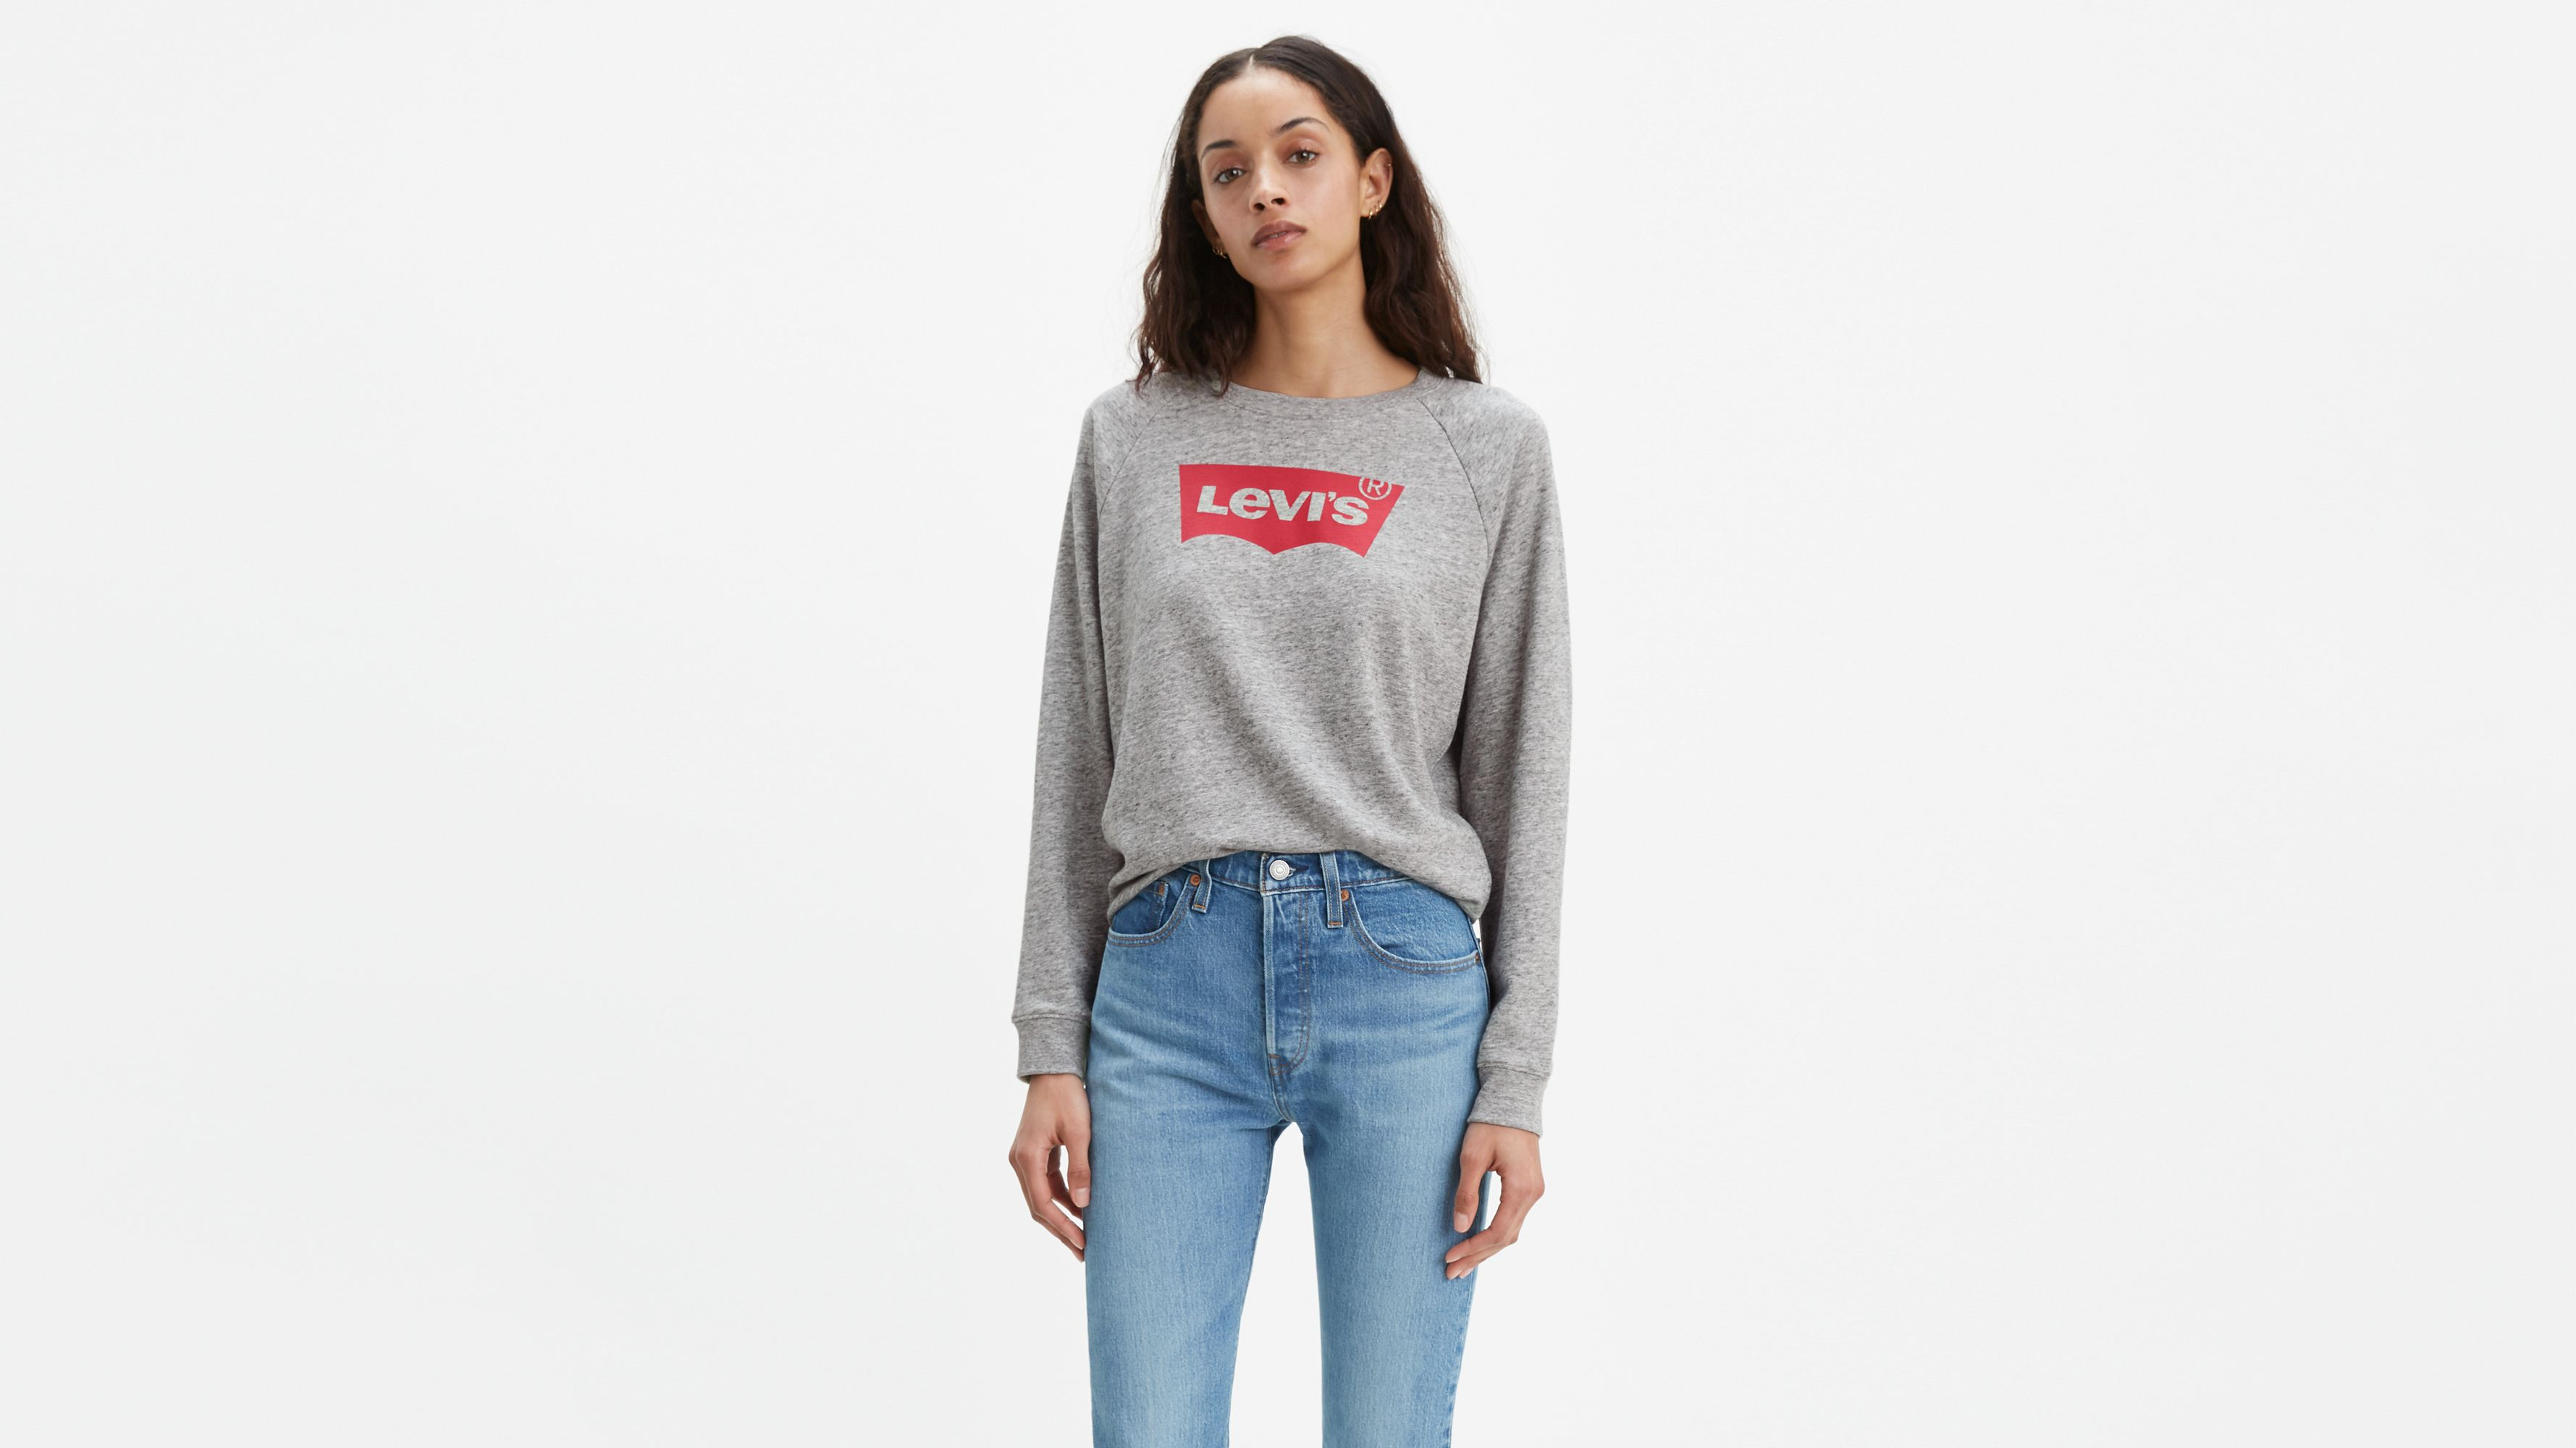 OnlineLevi's OnlineLevi's Clothing Ladies OnlineLevi's Ladies Clothing Clothing Ladies OnlineLevi's Clothing Ladies OnlineLevi's Ladies Clothing 0OP8nwk